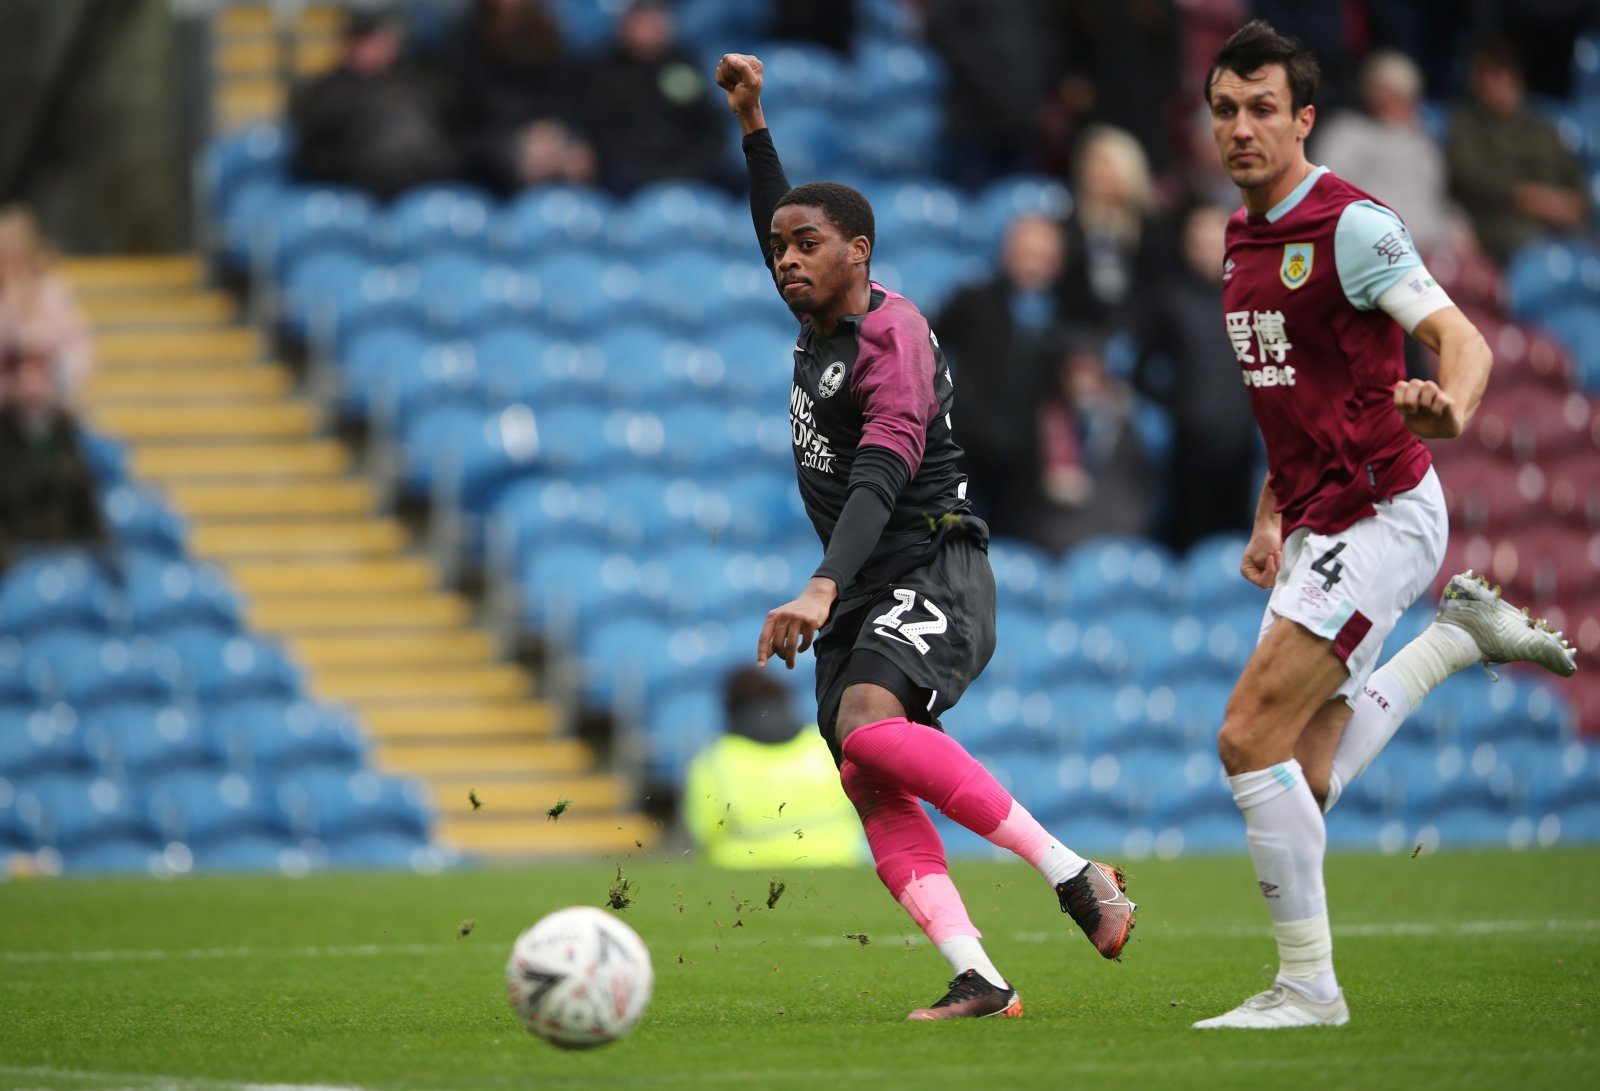 Huddersfield Town S Reece Brown How Is He Getting On Away On Loan Has He Got A Future At The Club Football League World